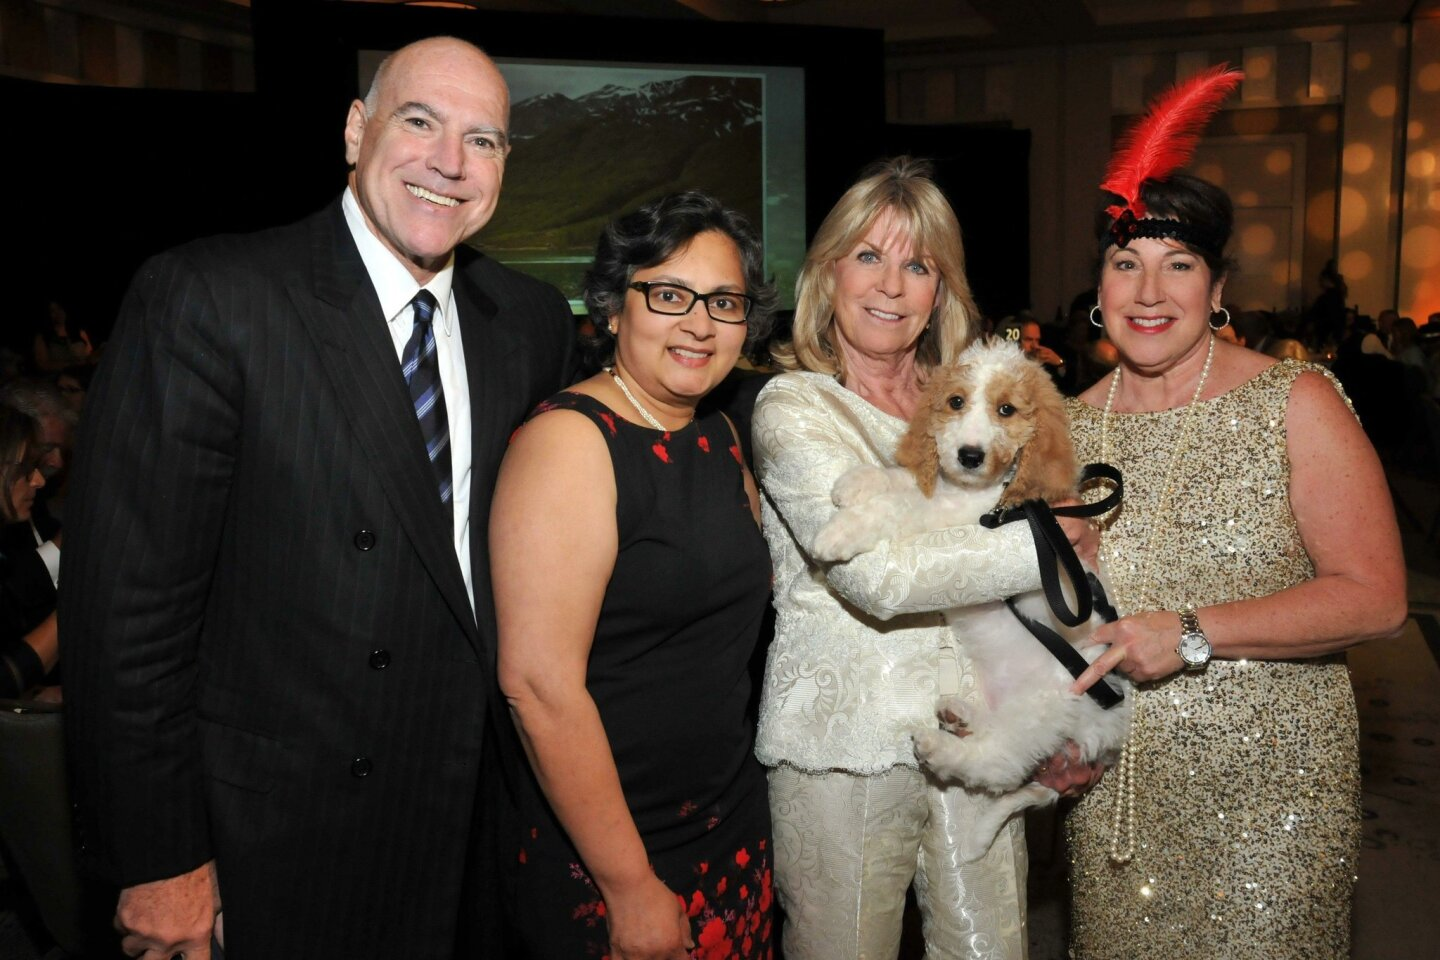 Ralph Whitworth (cancer patient of Dr. Koka), Dr. Anuradha Koka, Lynn Prudhomme (with the auction puppy, which went for $6,500), Amy Weiner